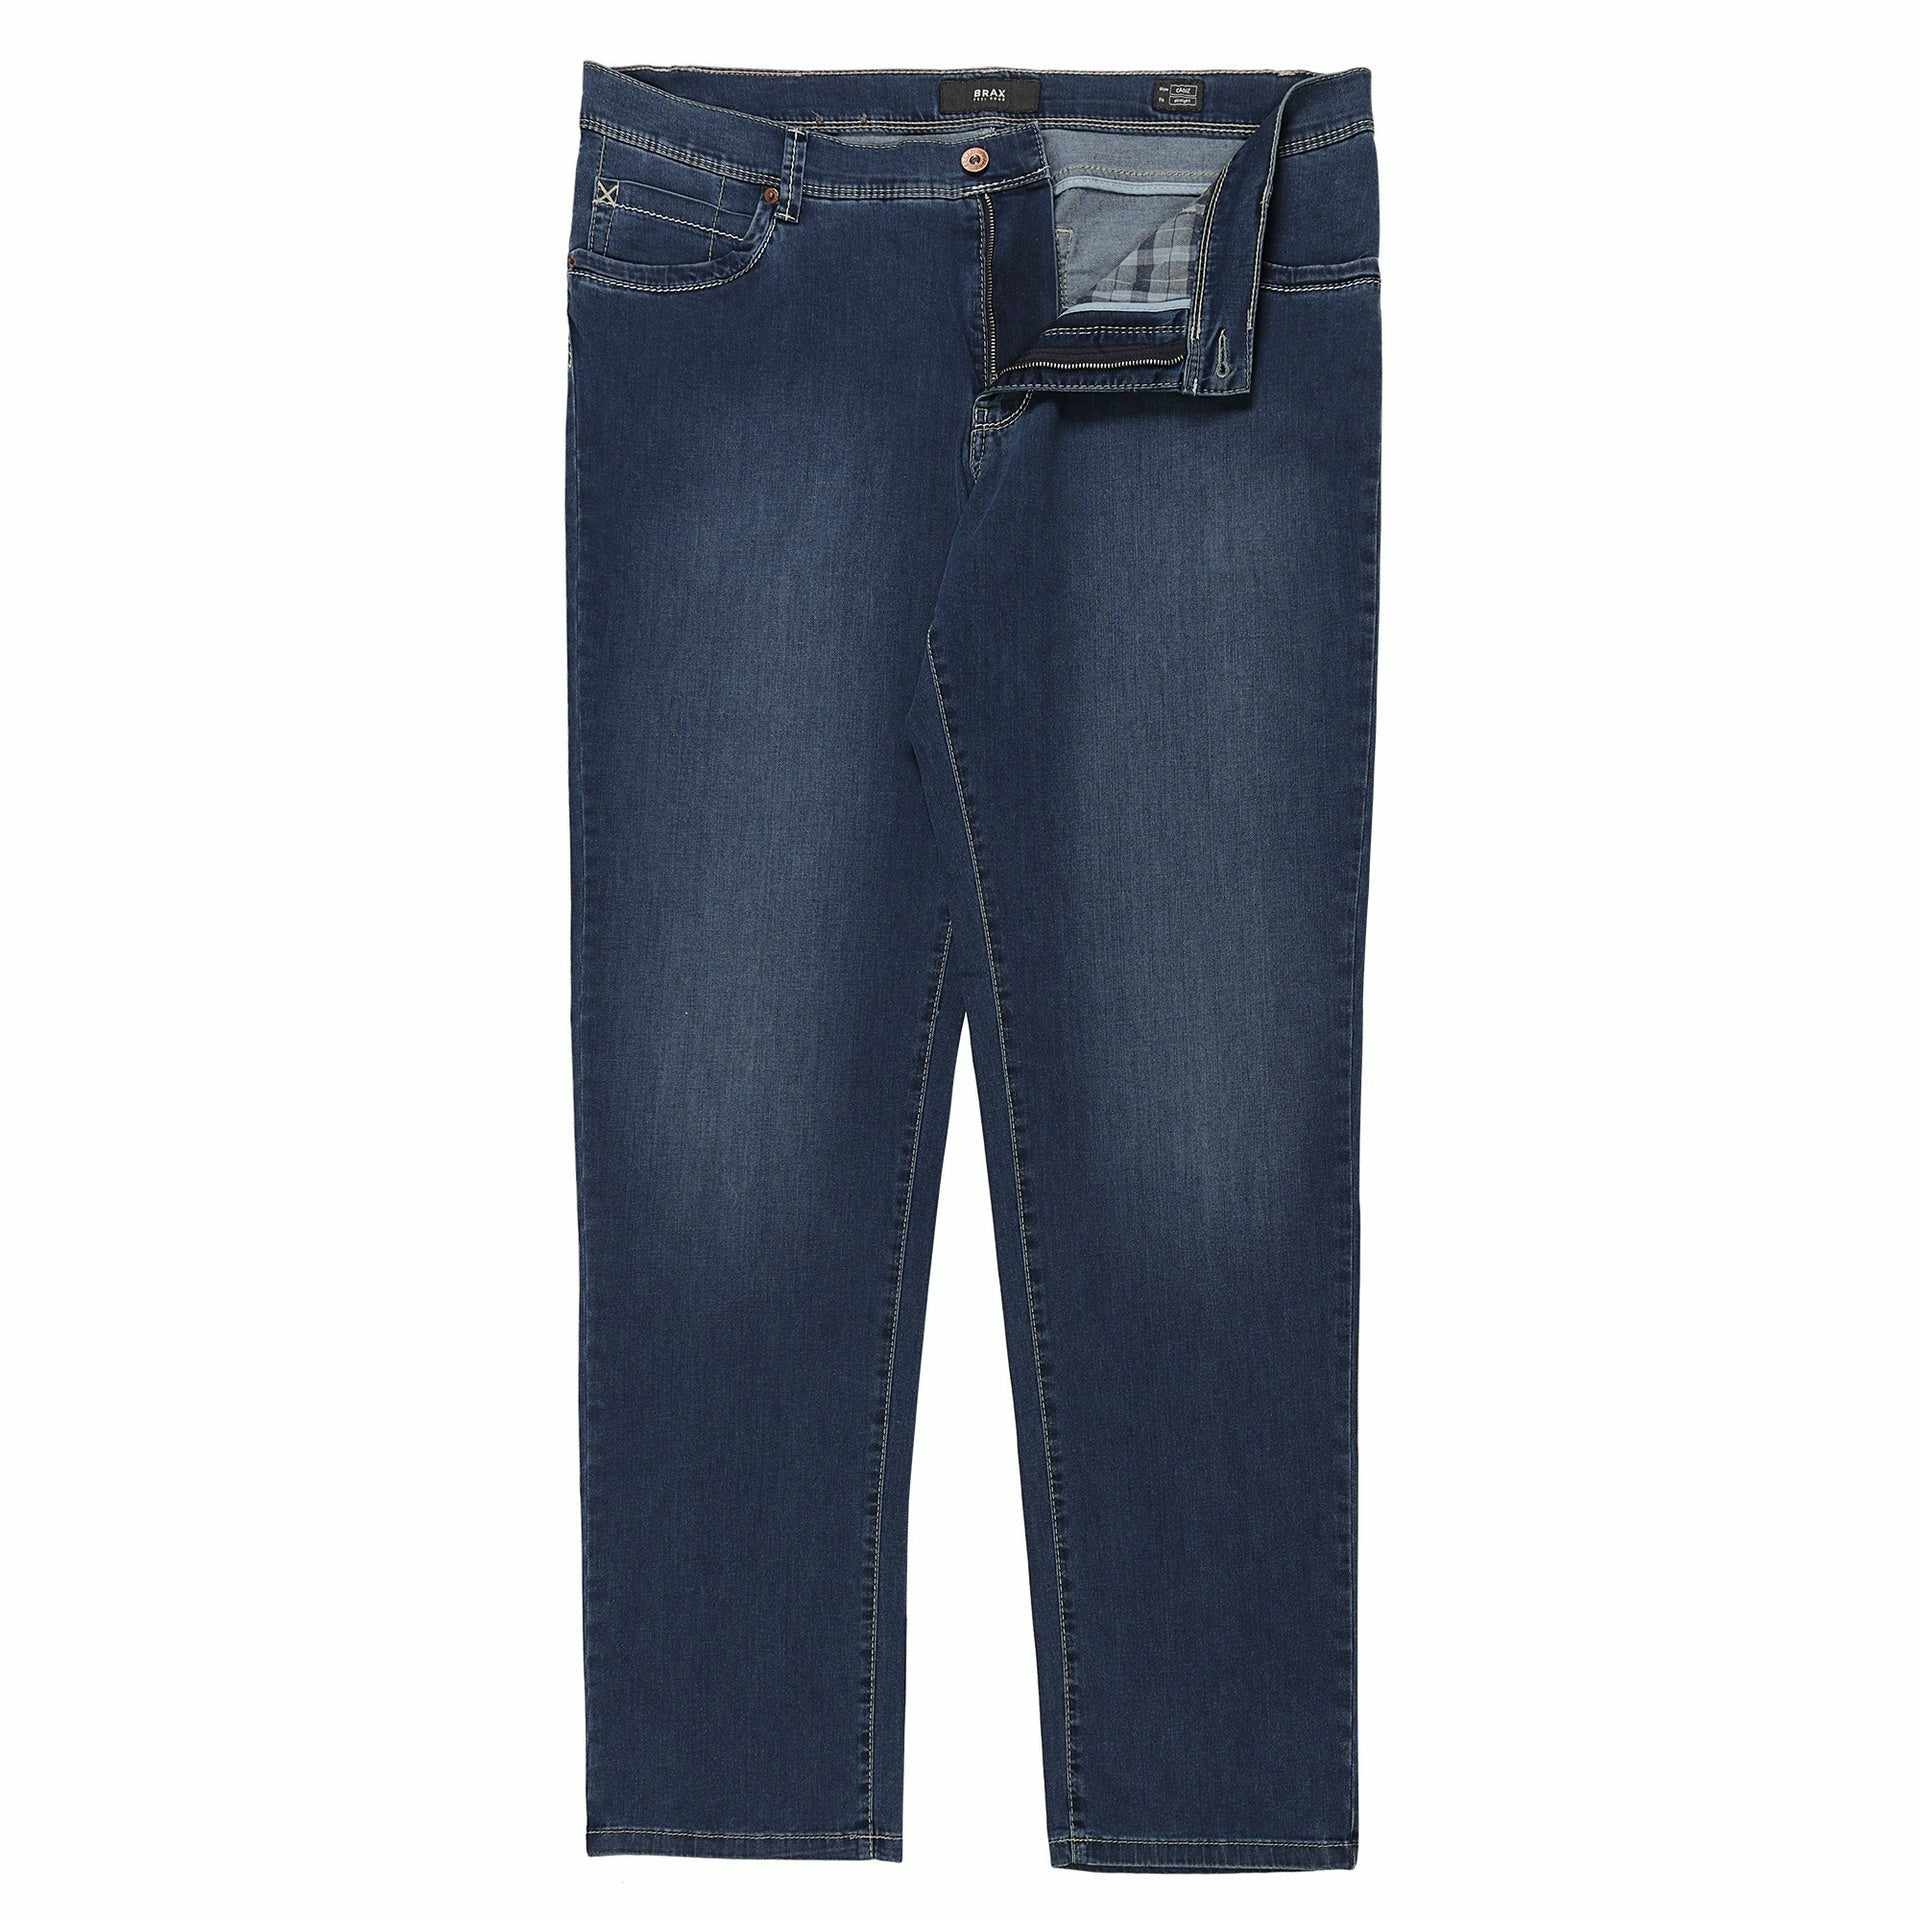 Mens Chuck Jeans Brax Choice For Sale xvO44